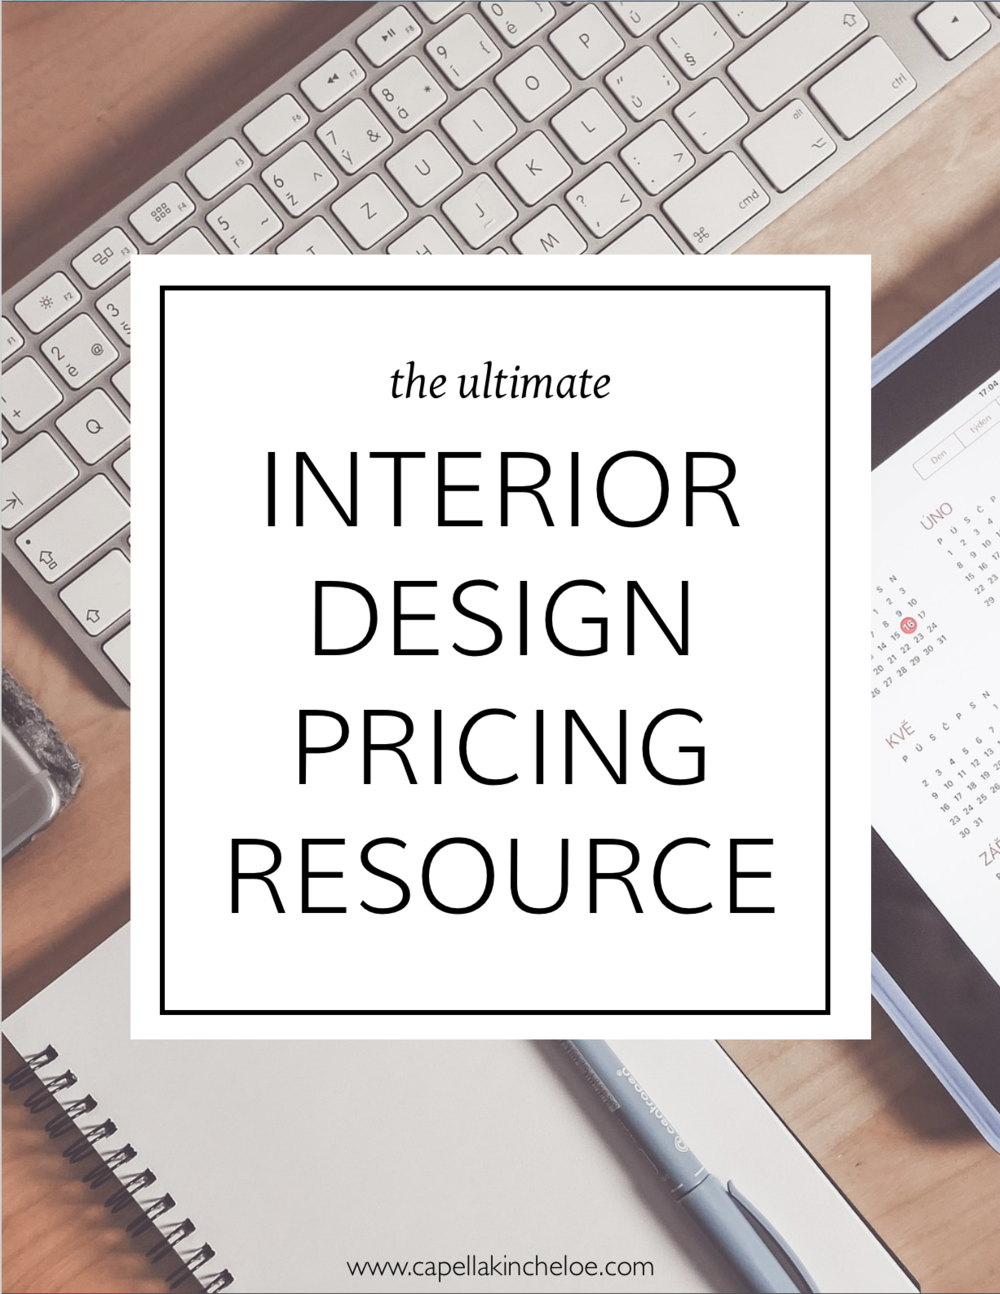 All the articles you ever need to price interior design services